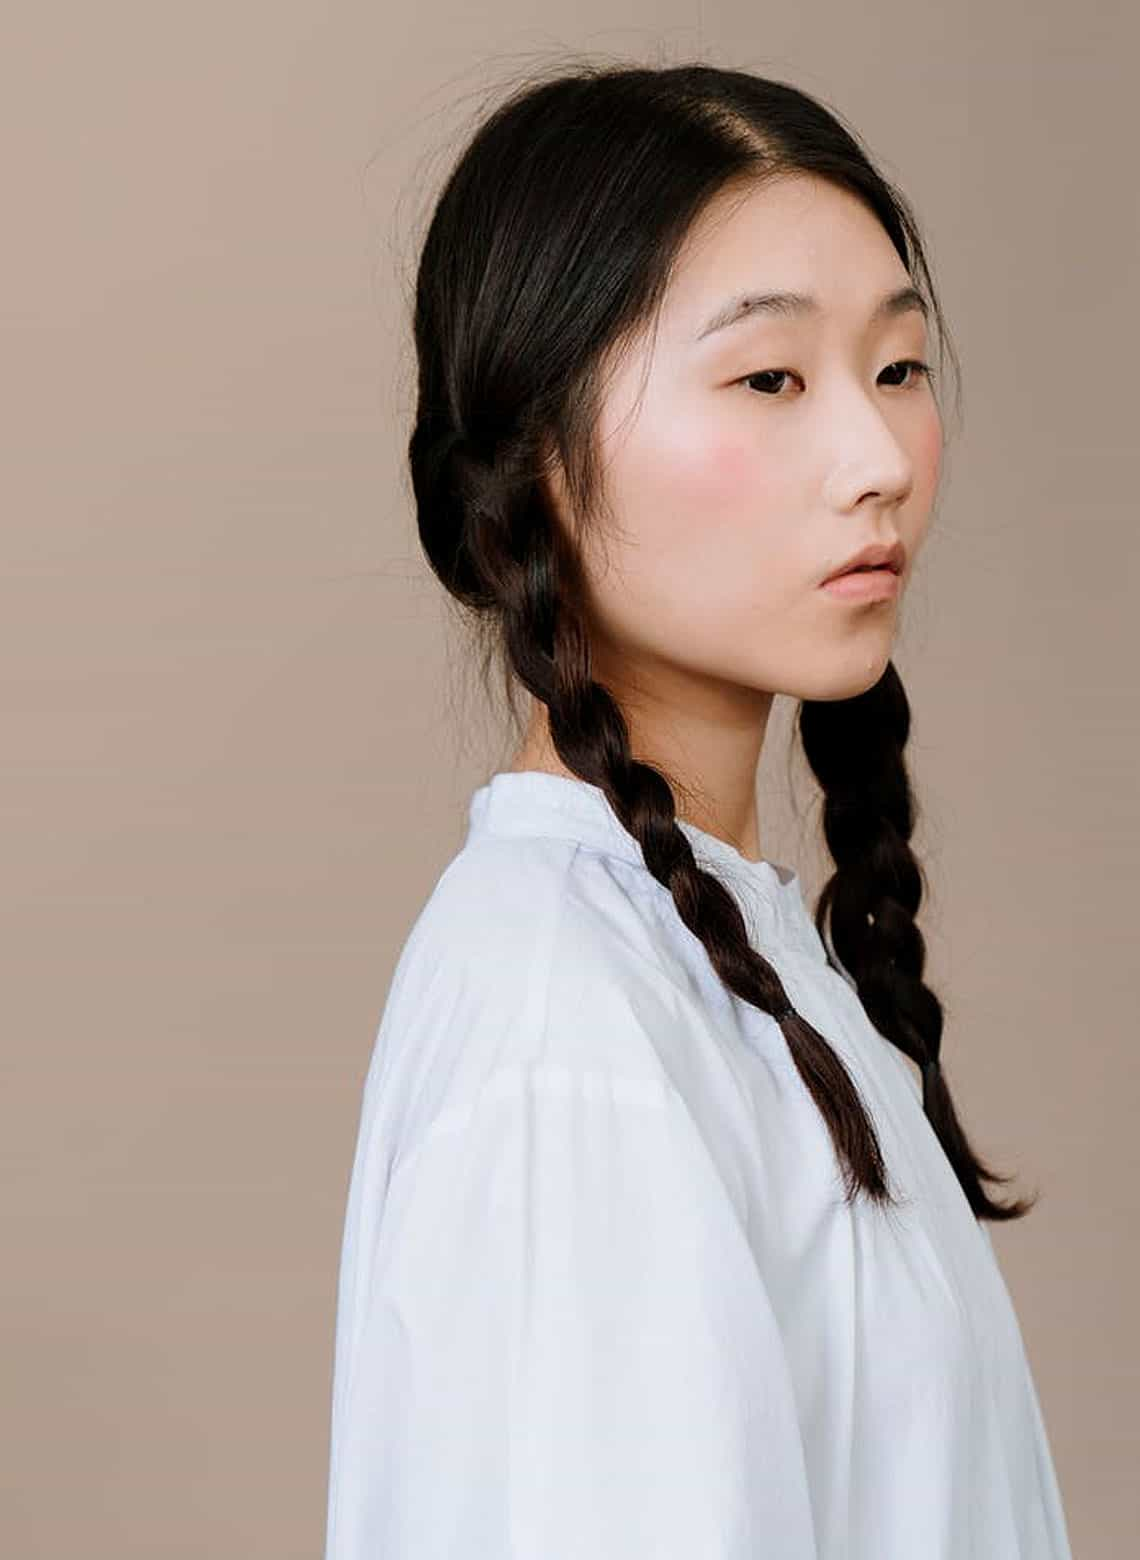 woman with classic braided pigtails